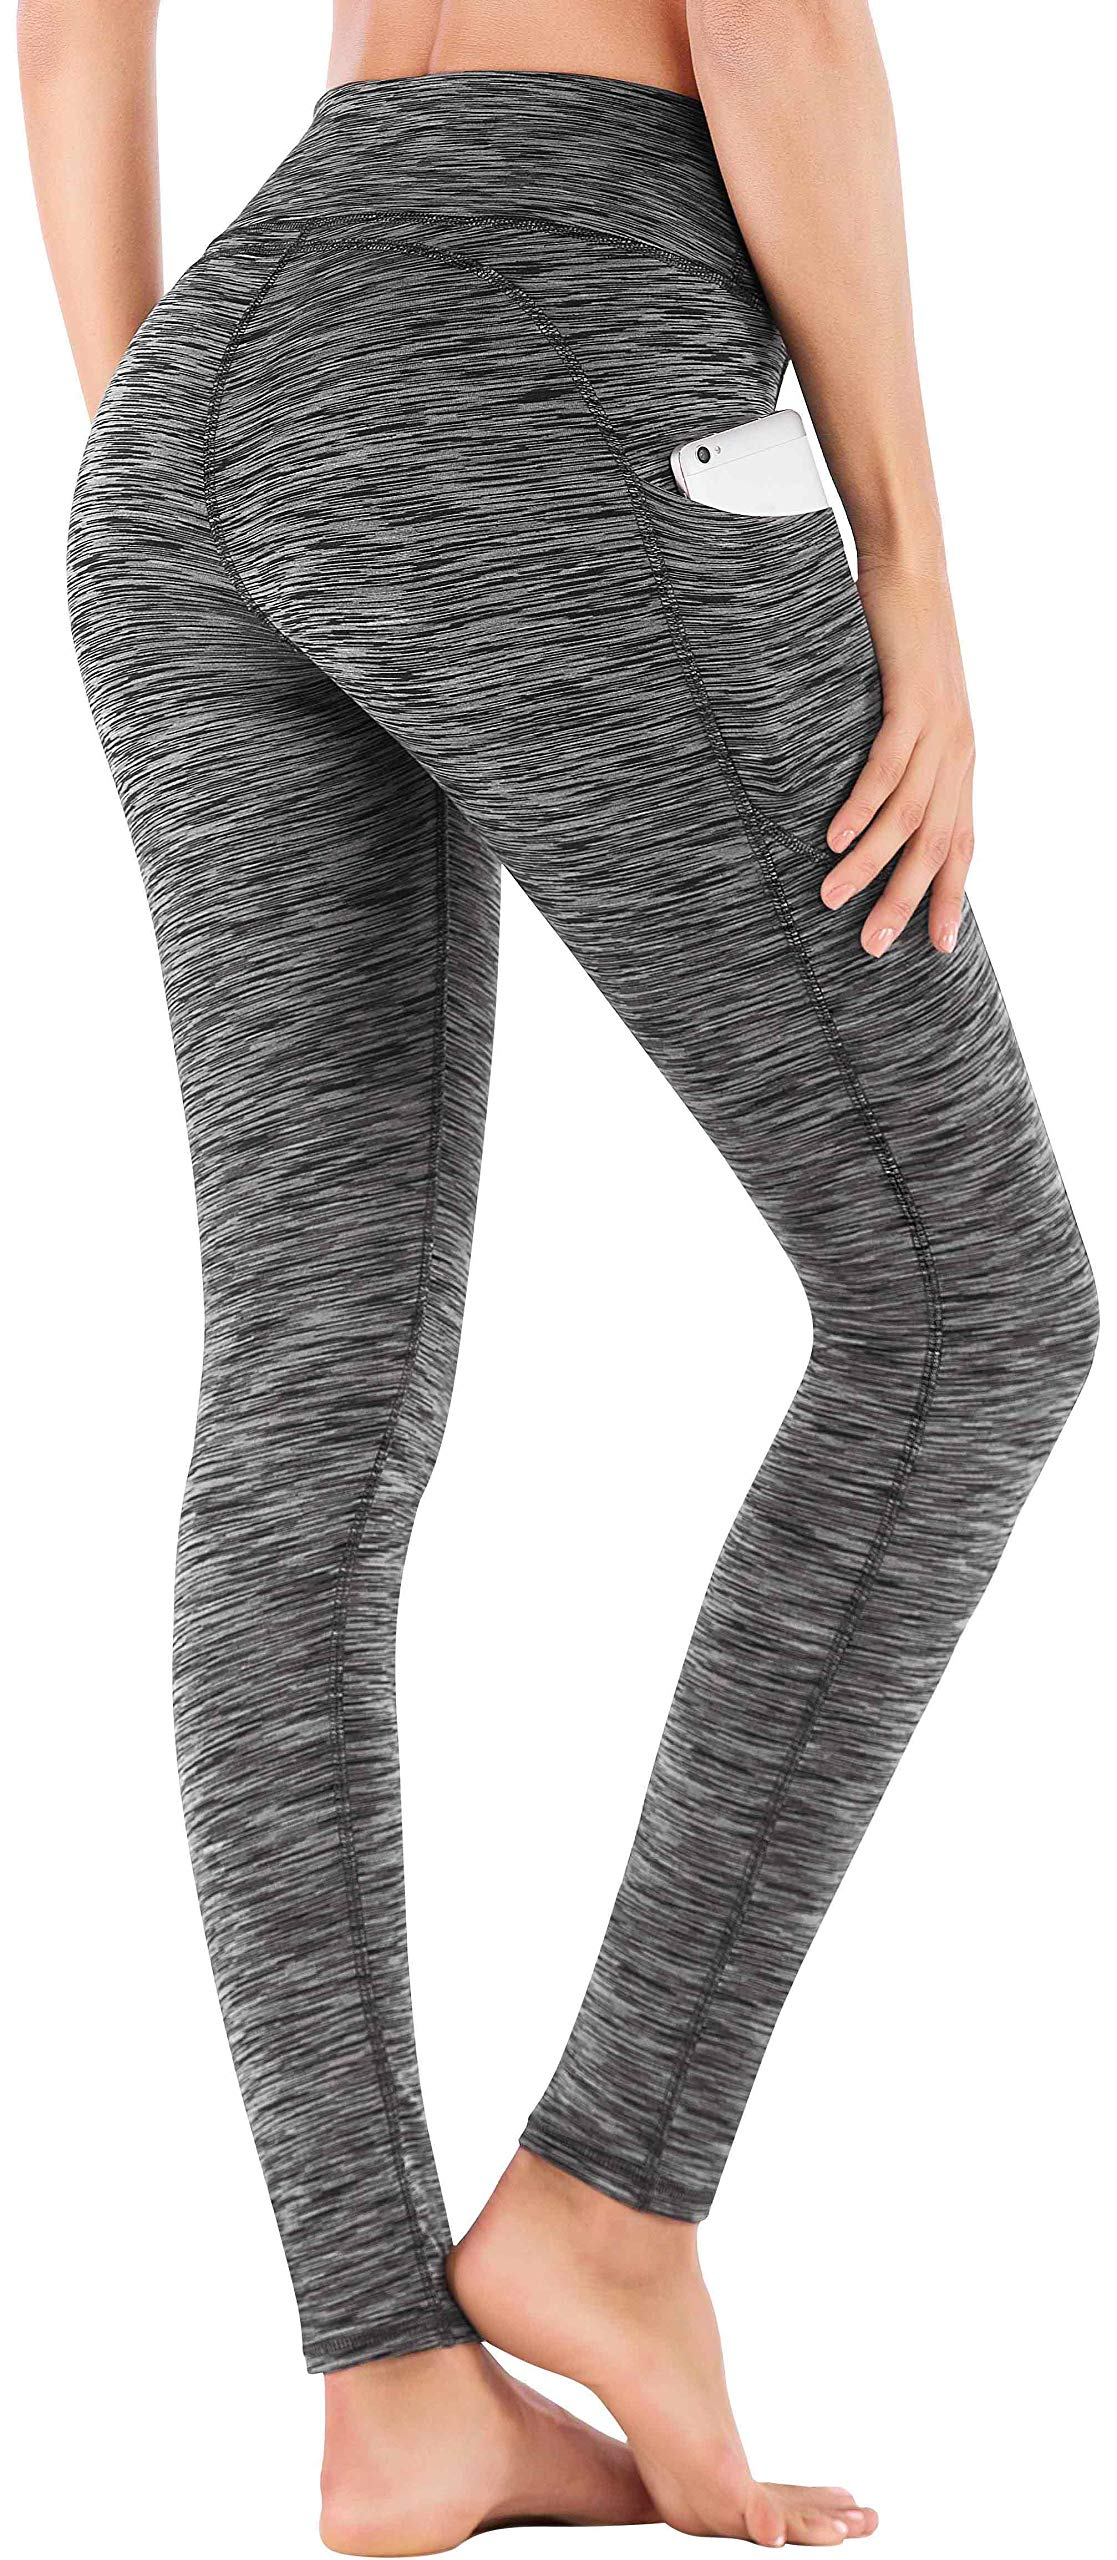 IUGA High Waist Yoga Pants with Pockets, Tummy Control, Workout Pants for Women 4 Way Stretch Yoga Leggings with Pockets (Space Dye Gray, Small) by IUGA